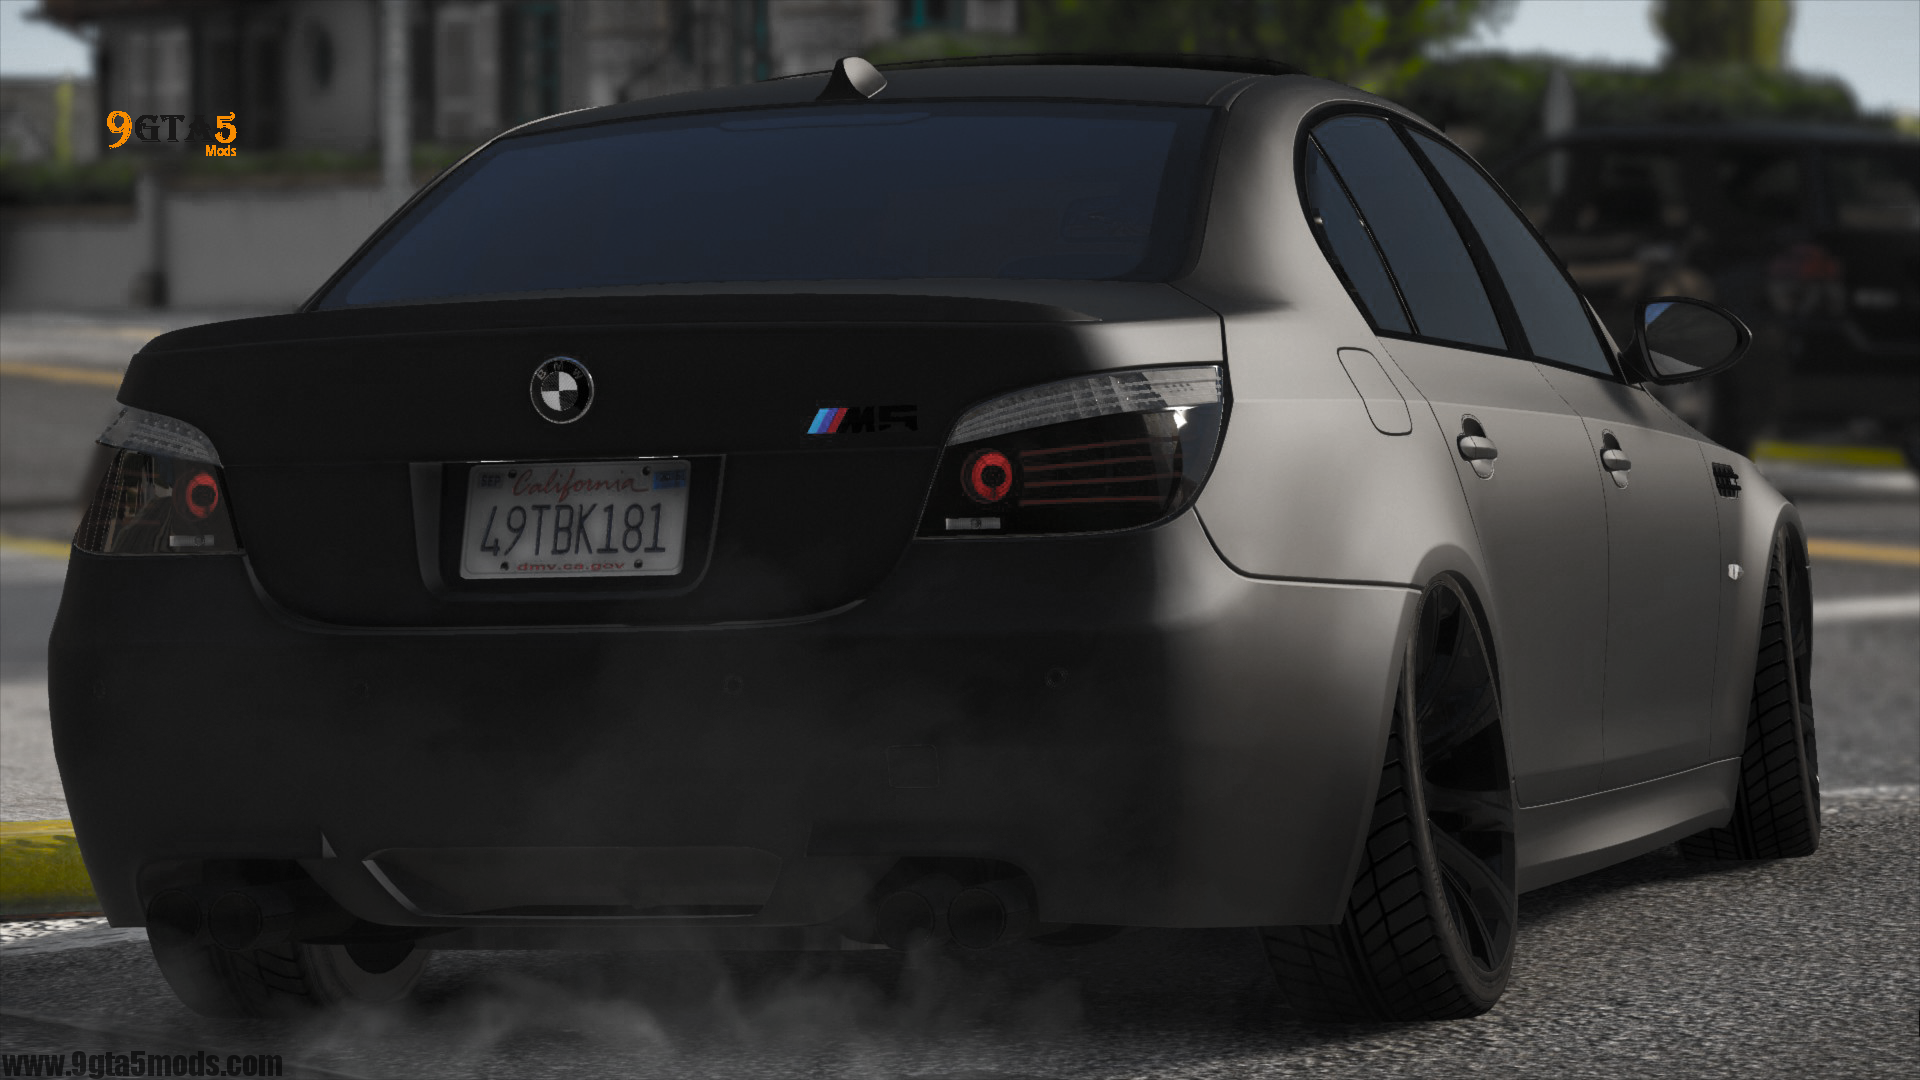 Bmw E60 M5 Add On Tuning Liveries Gta 5 Vehicles